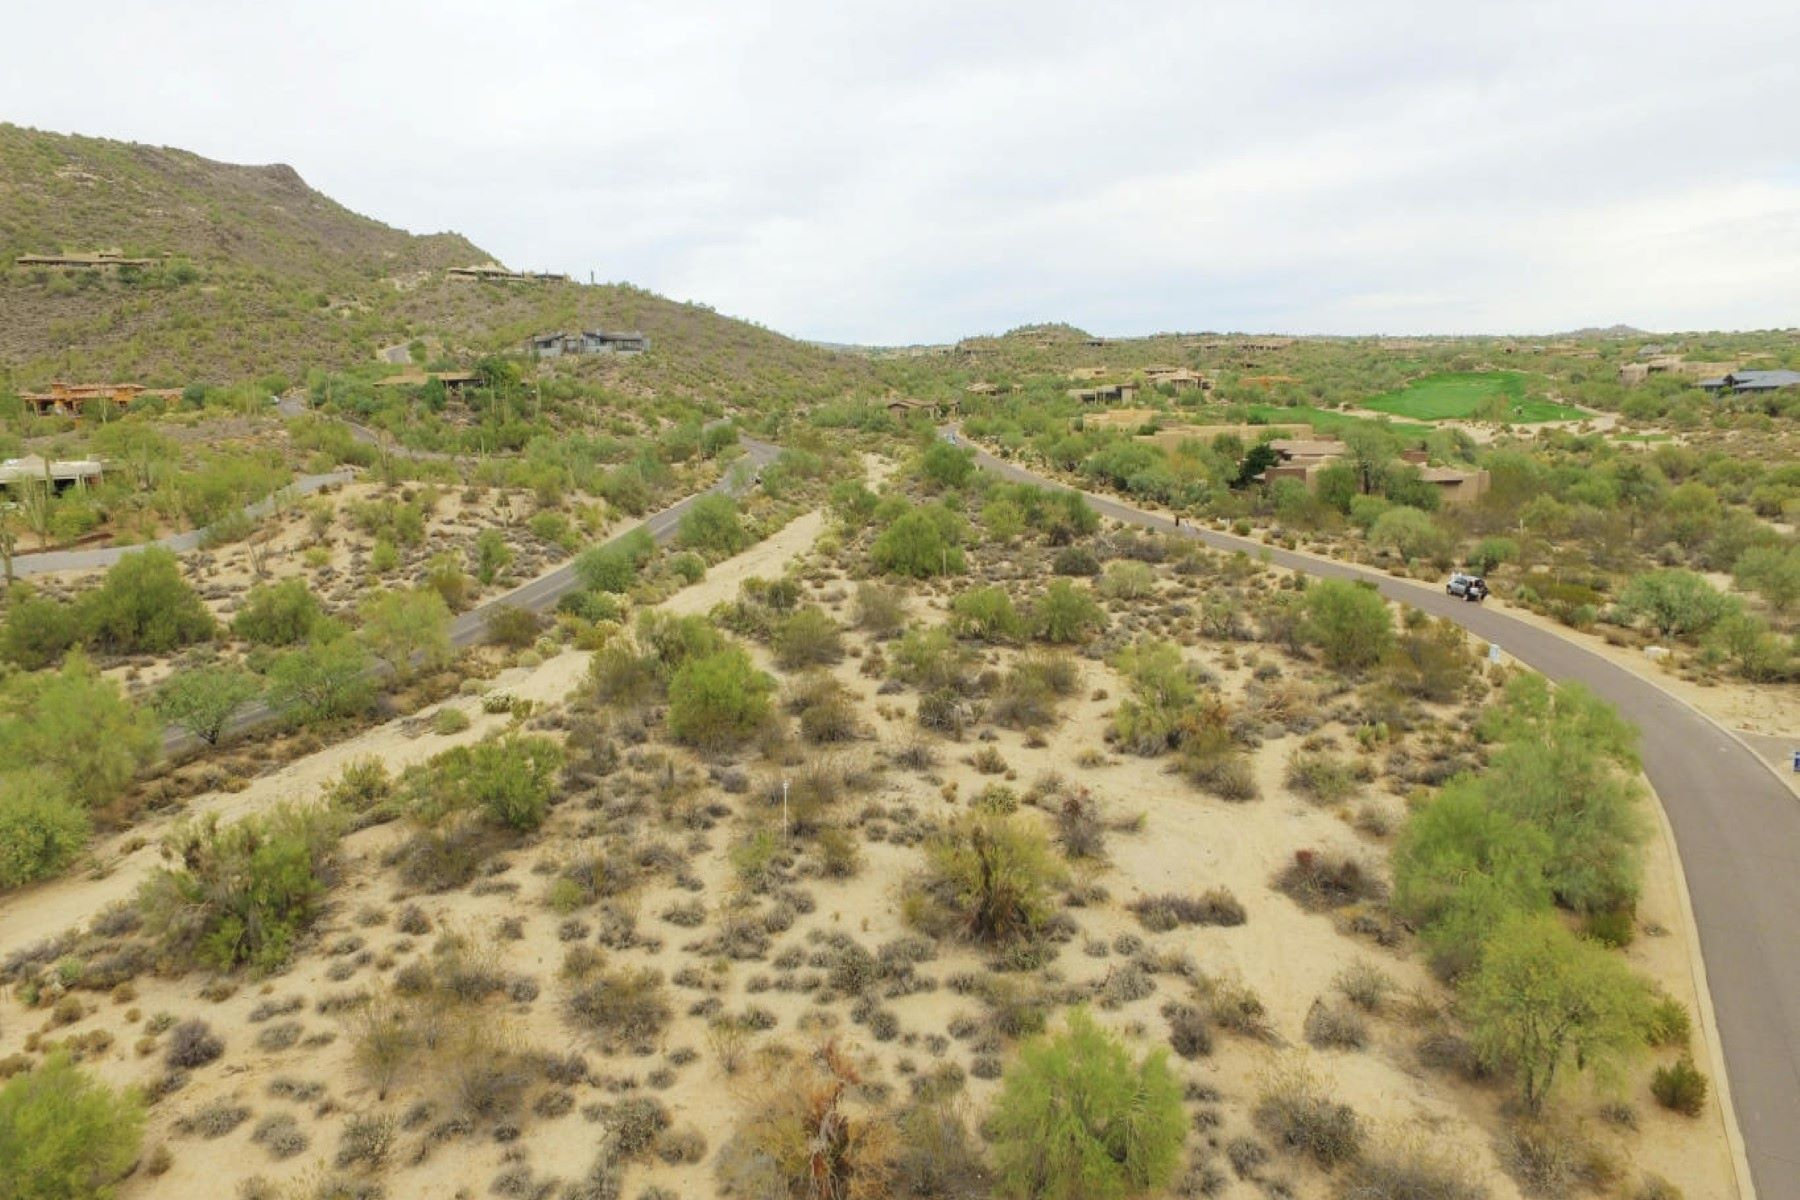 Land for Sale at Wonderful homesite at Desert Mountain located in the village of Gambel Quail 9420 E Covey Trl #240, Scottsdale, Arizona, 85262 United States